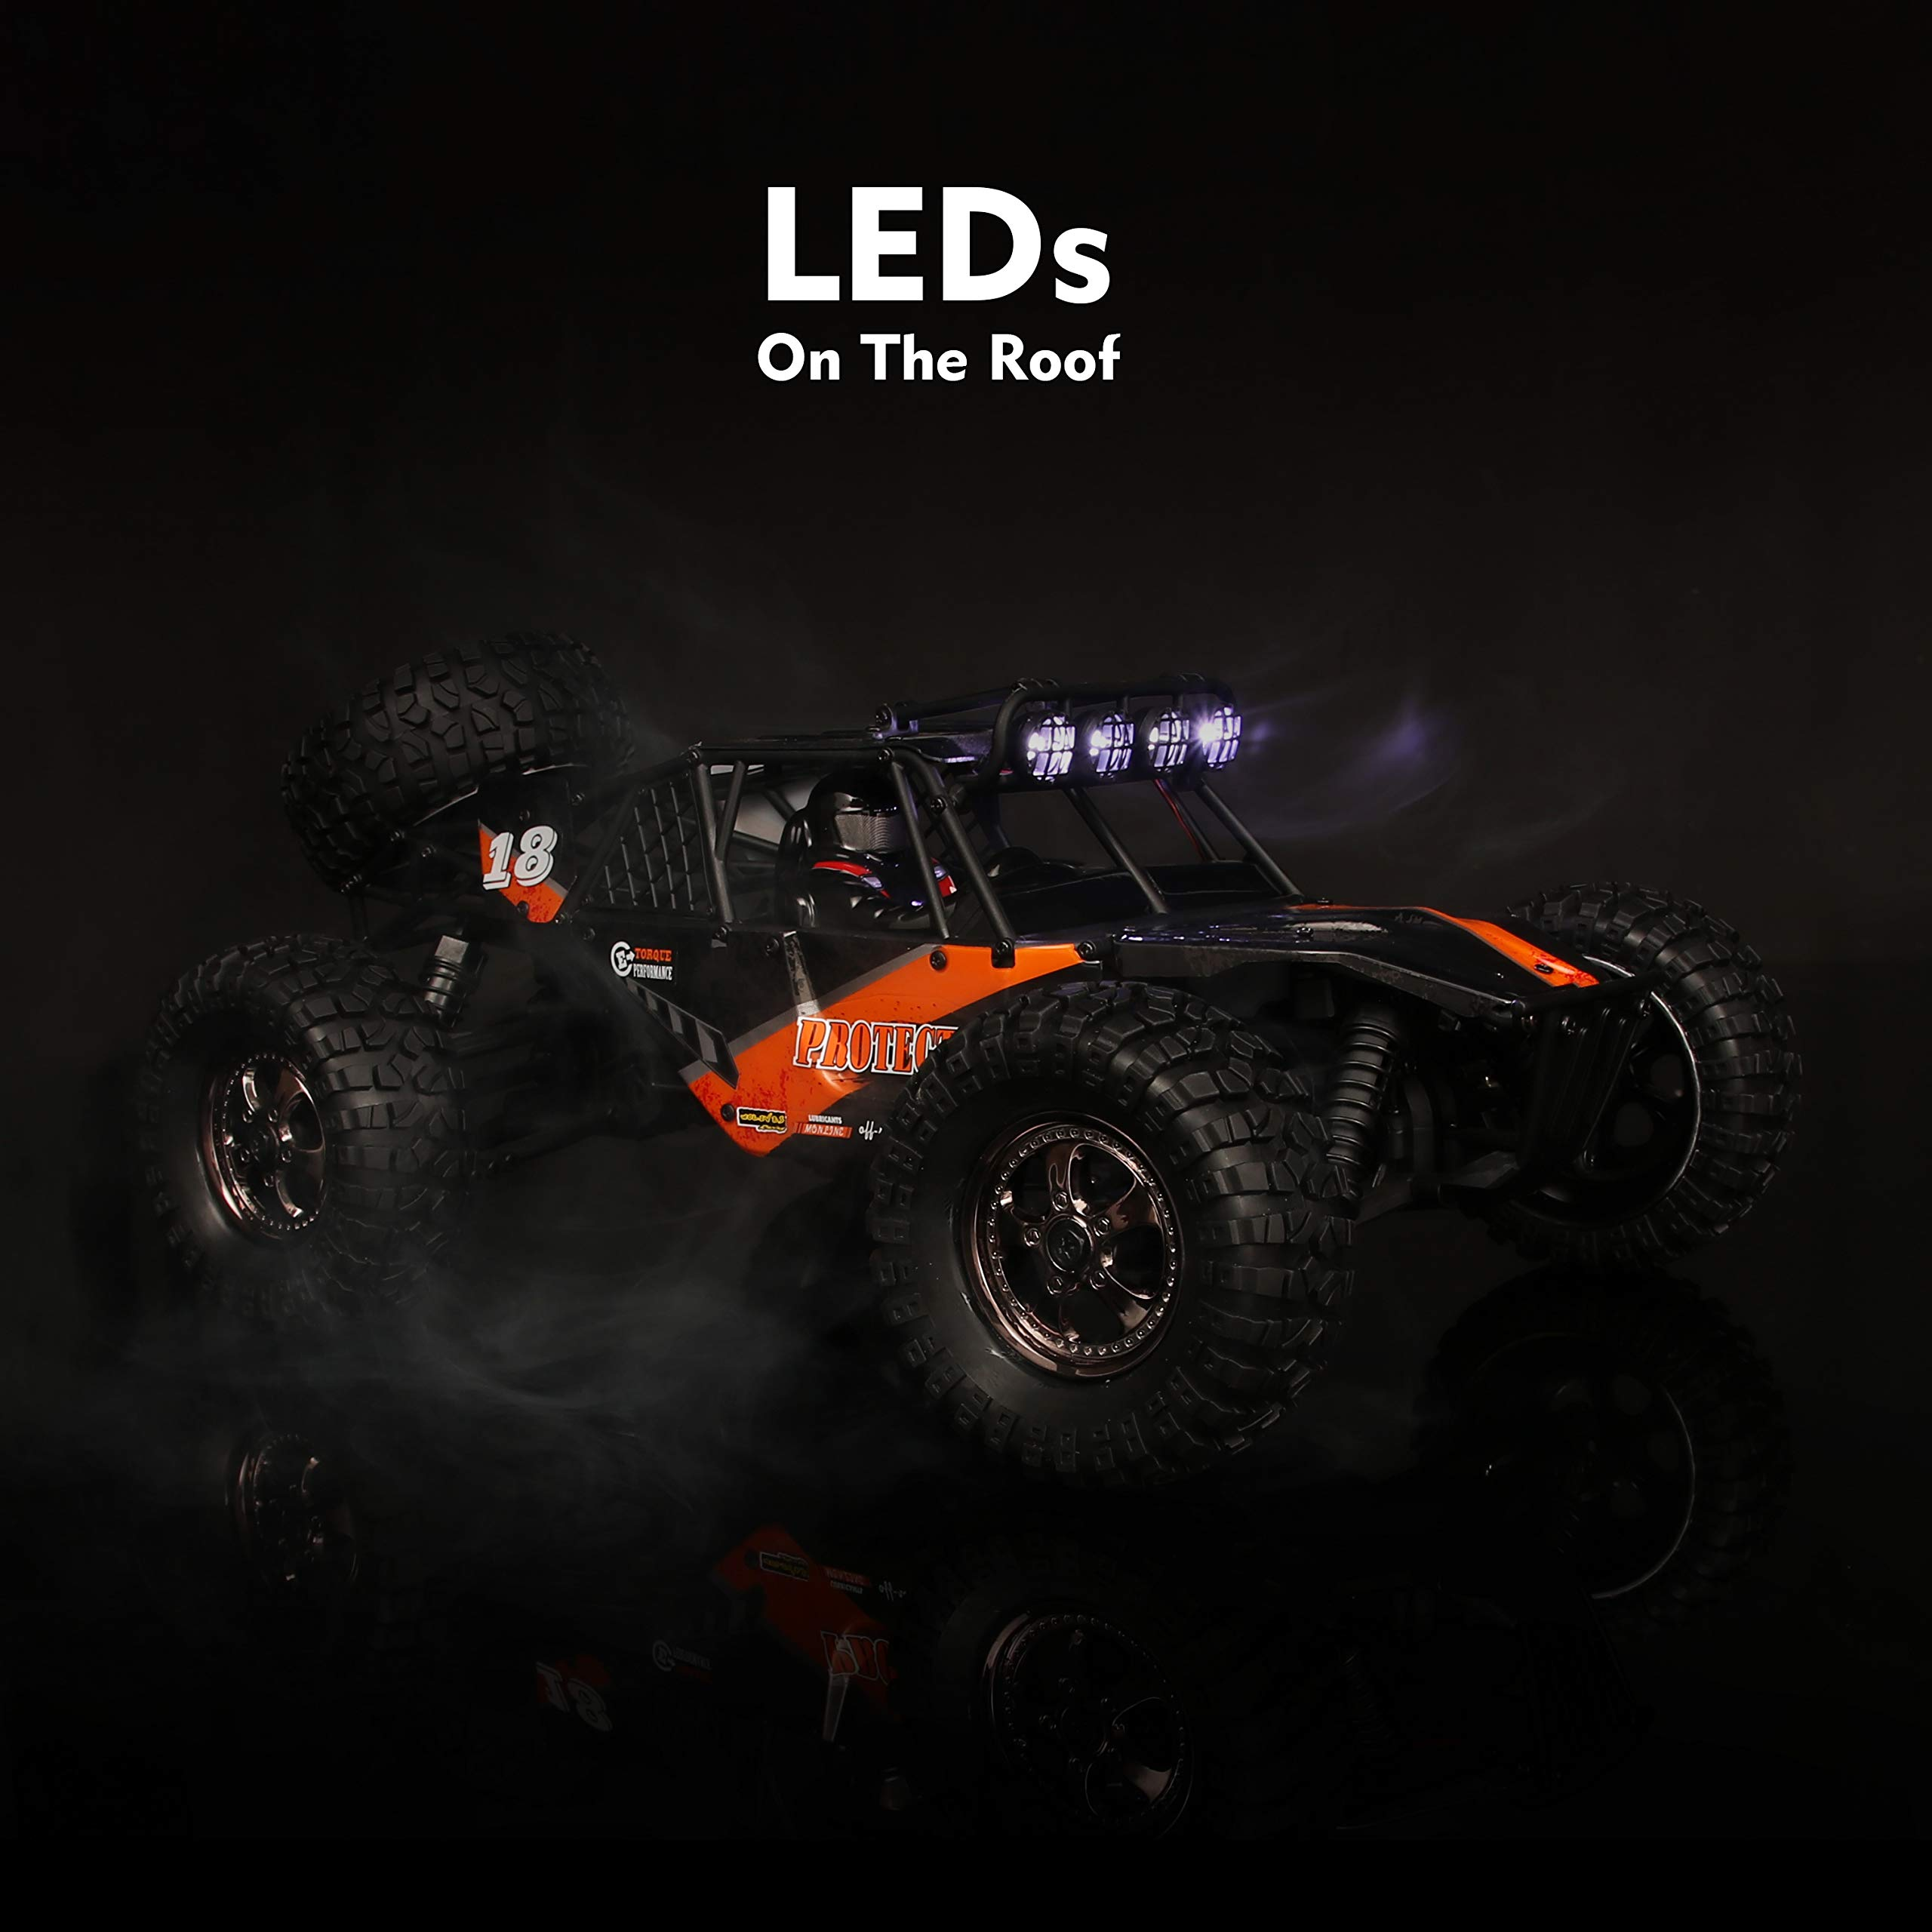 RC Cars Protector 1/12 Scale 4WD Off-Road Buggy 38+KM/H High Speed LED Lights, 2.4 GHz Radio Controlled All Terrain Waterproof Trucks RTR Electric Power Rechargeable Batteries 7.4 V 1500 mAh by BBM HOBBY (Image #6)